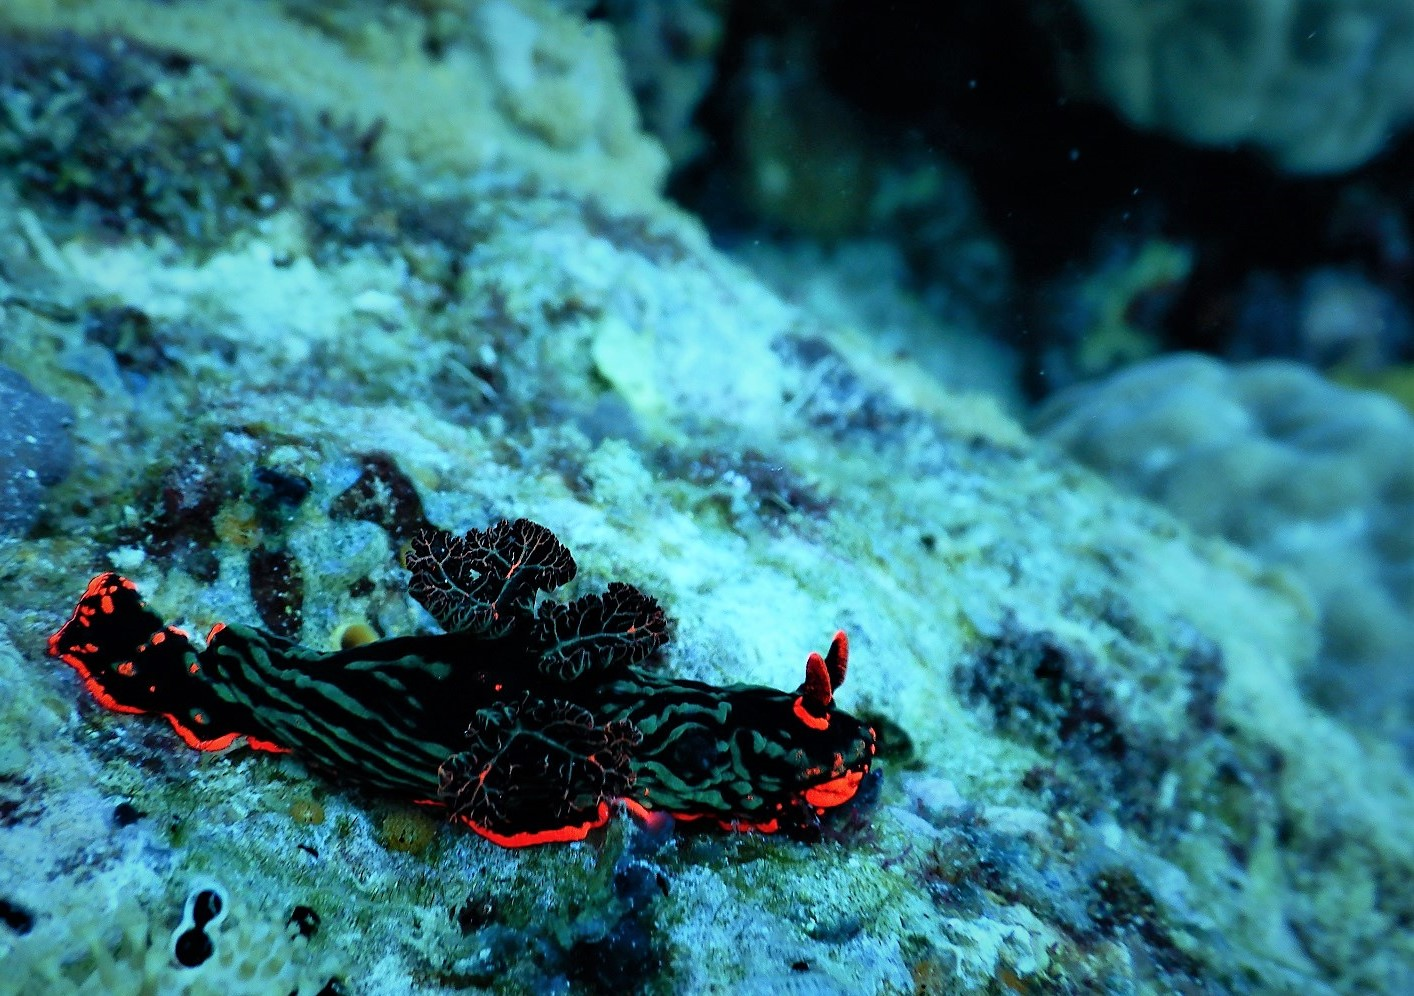 Apo Island is full of nudibranch